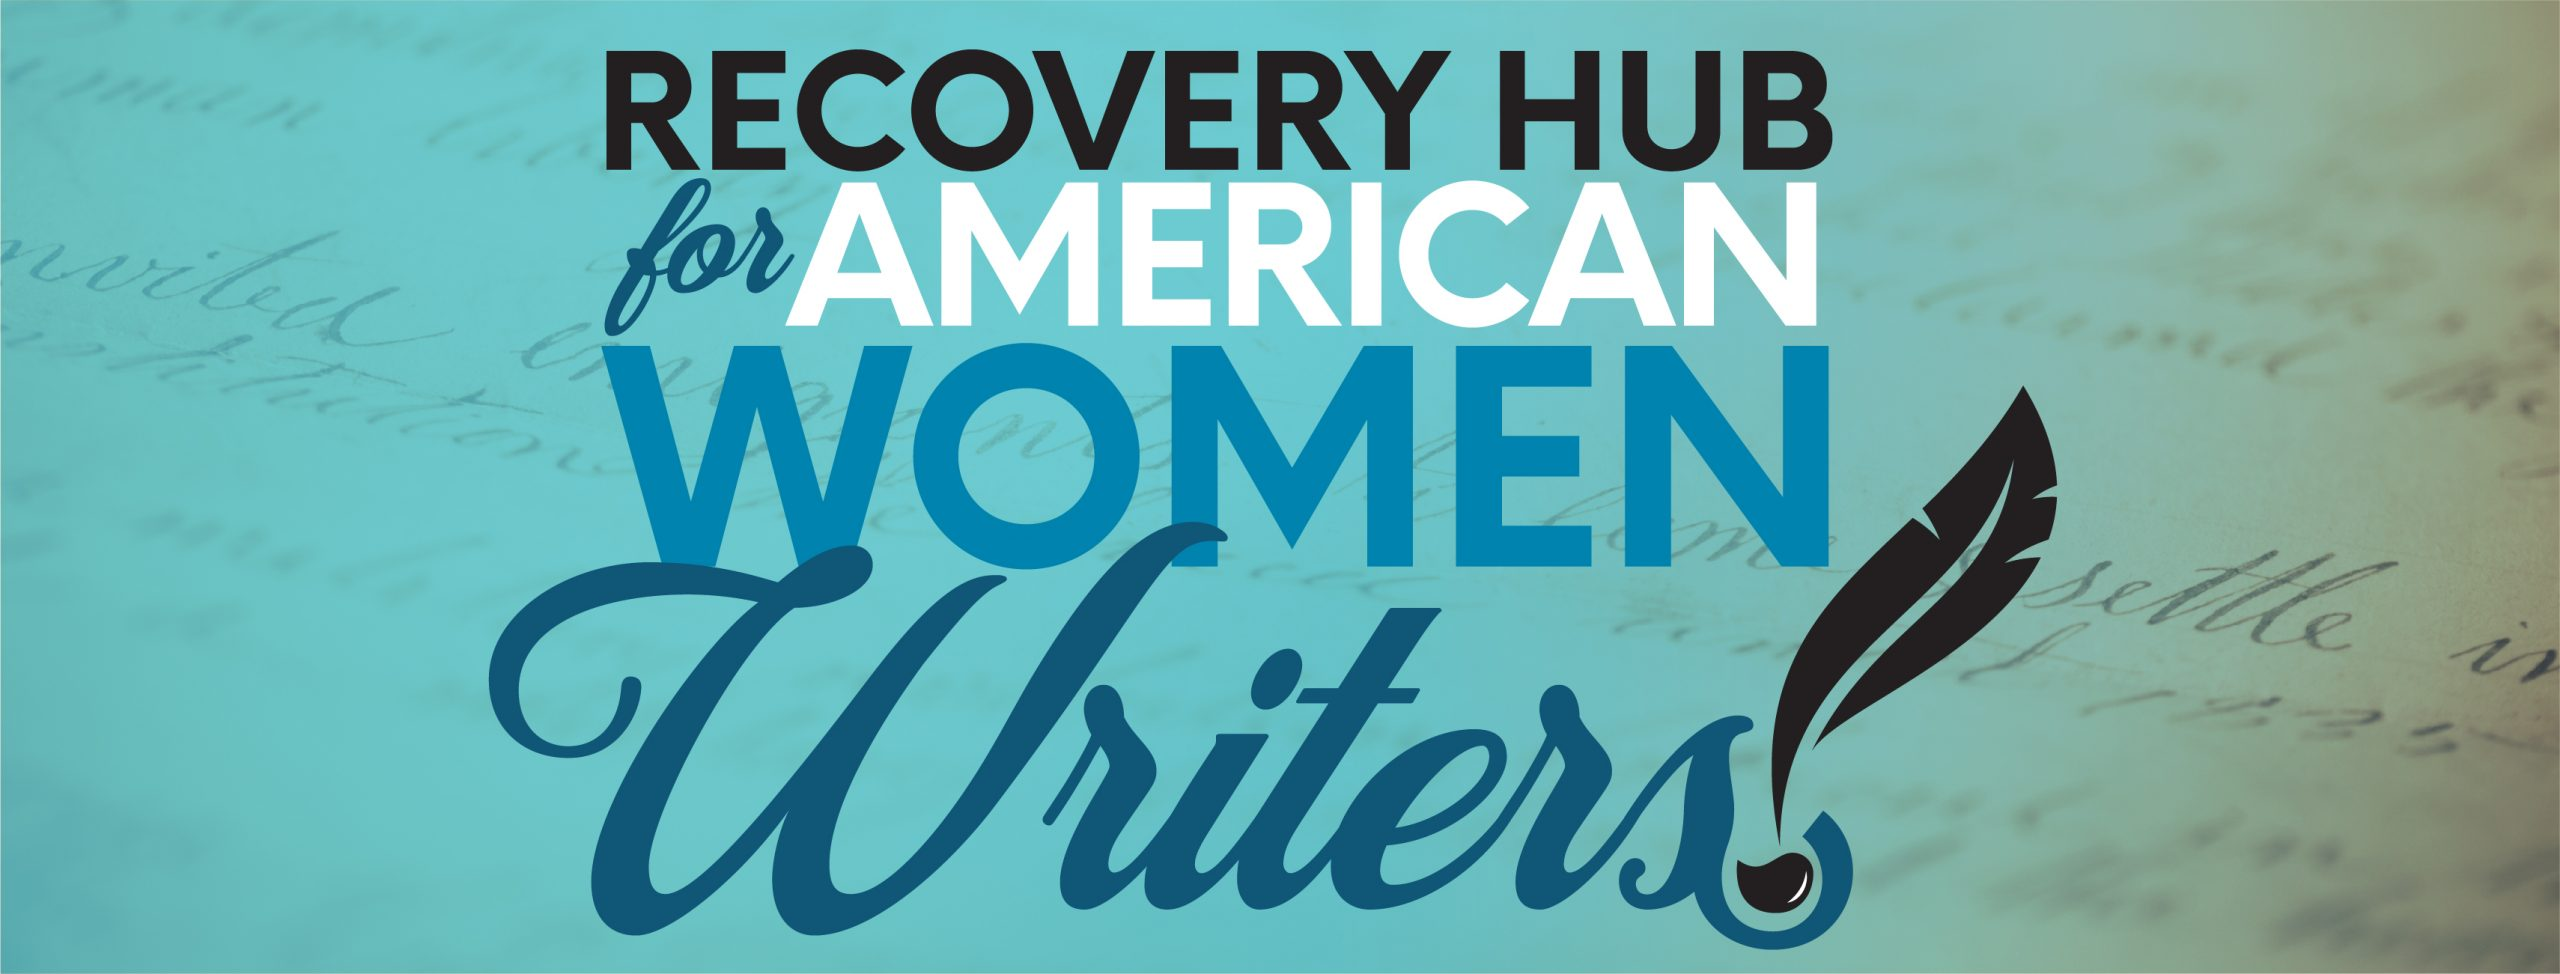 Recovery Hub for American Women Writers